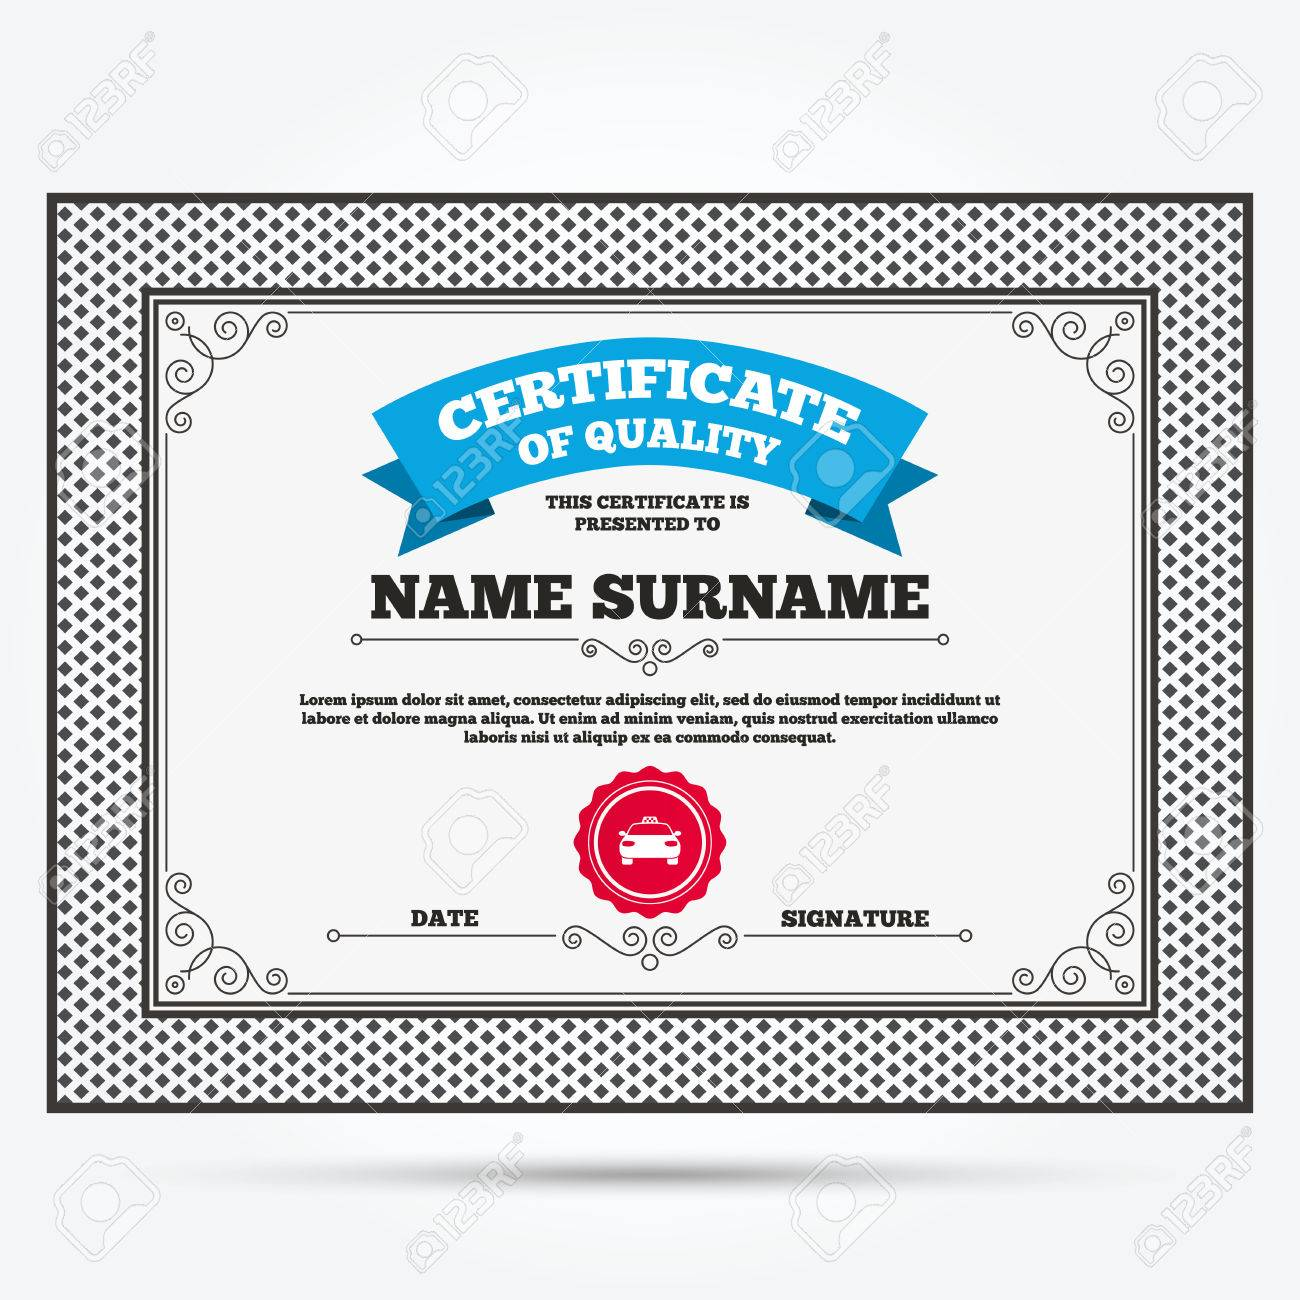 Certificate of quality taxi car sign icon public transport certificate of quality taxi car sign icon public transport symbol template with vintage 1betcityfo Gallery